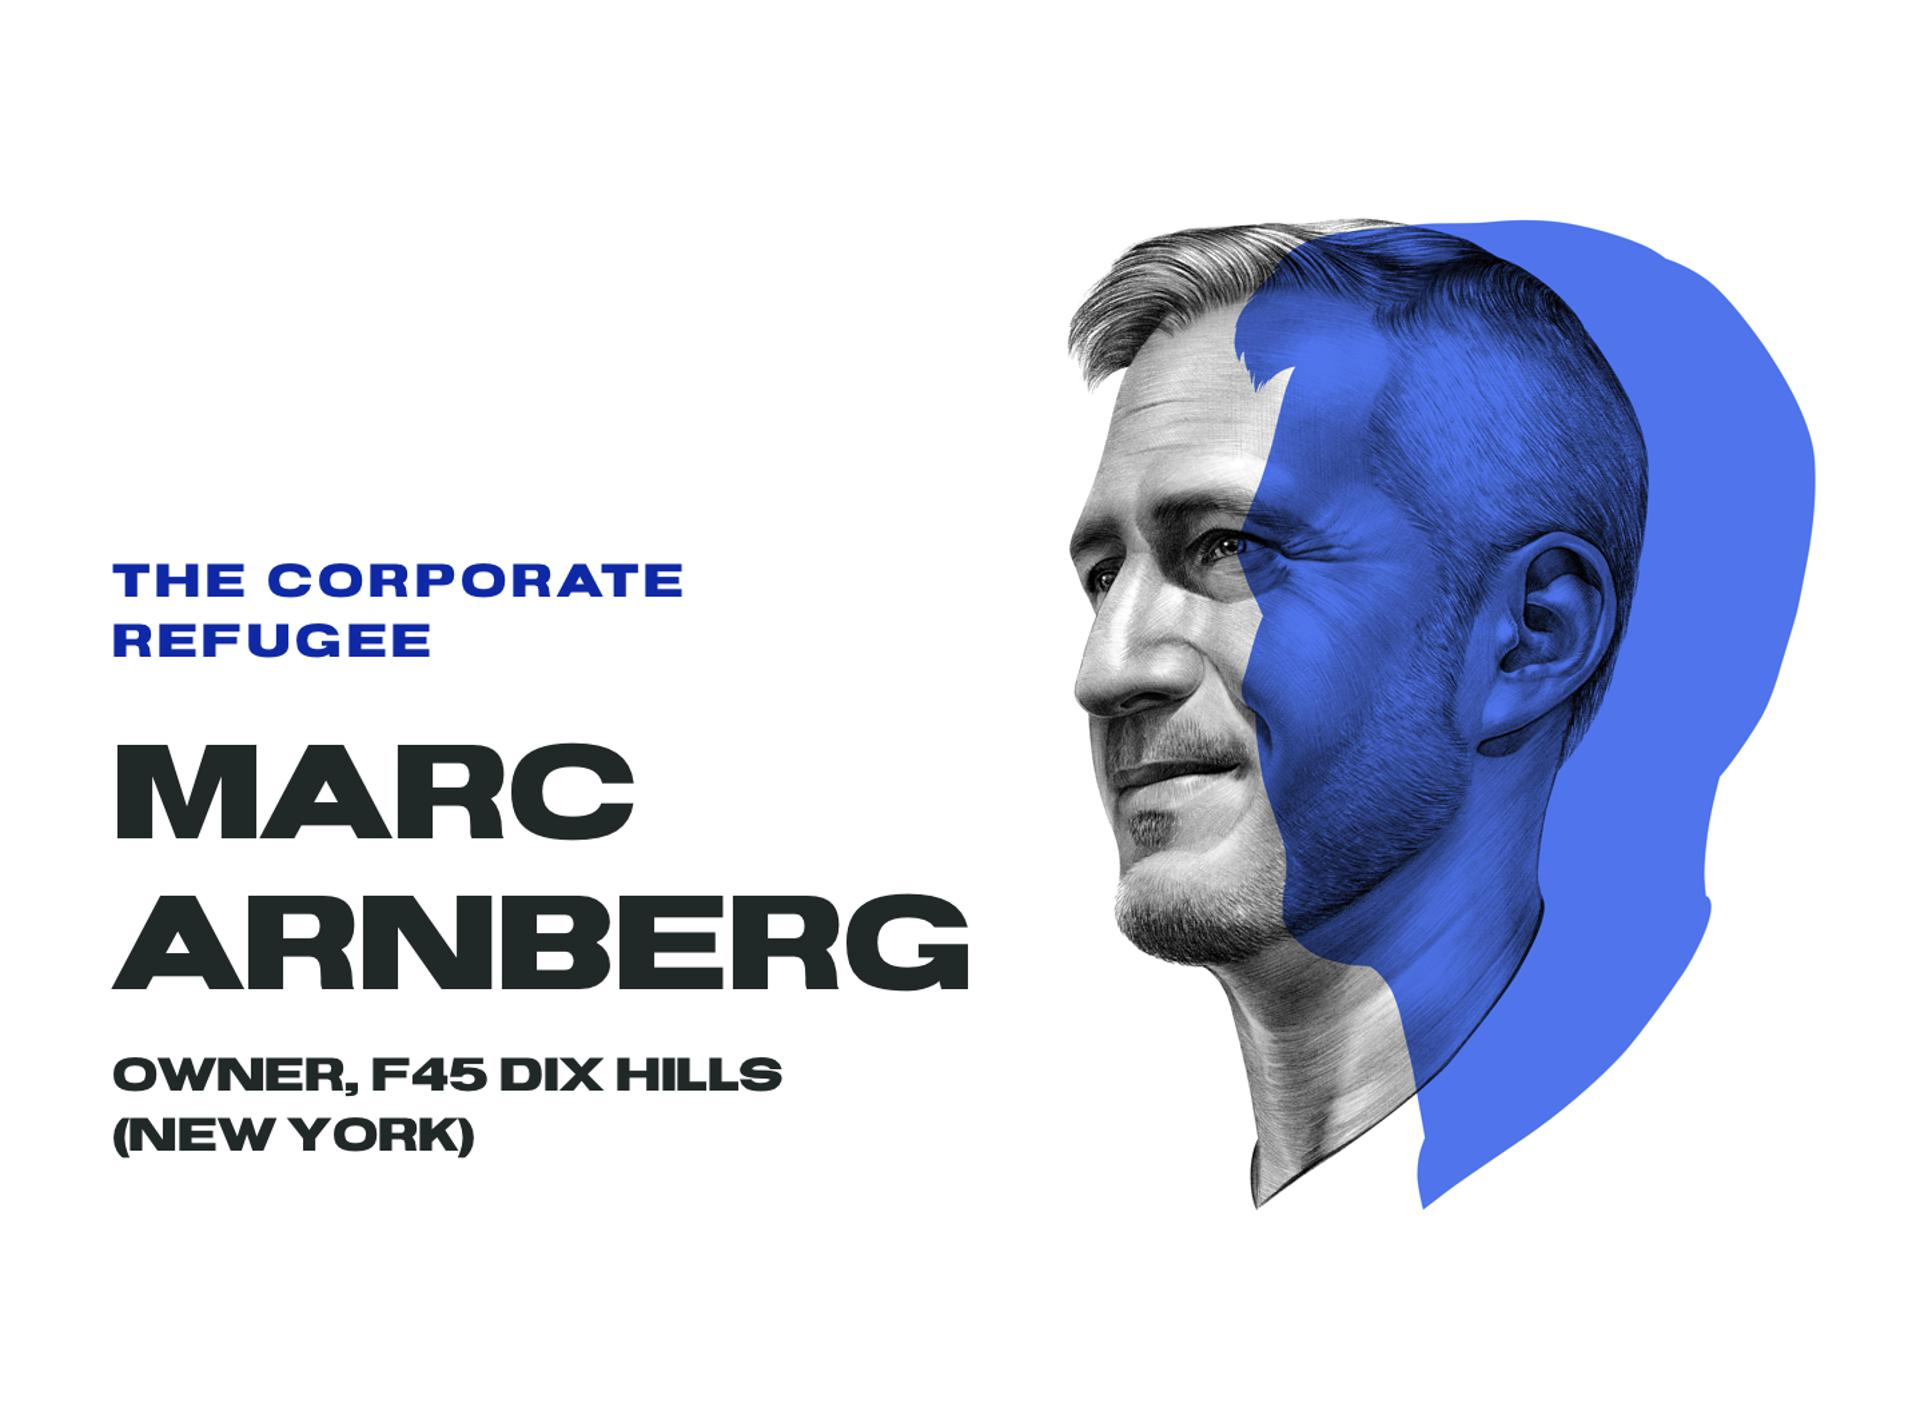 The corporate refugee, Marc Arnberg, owner, F45 Dix Hills (New York)